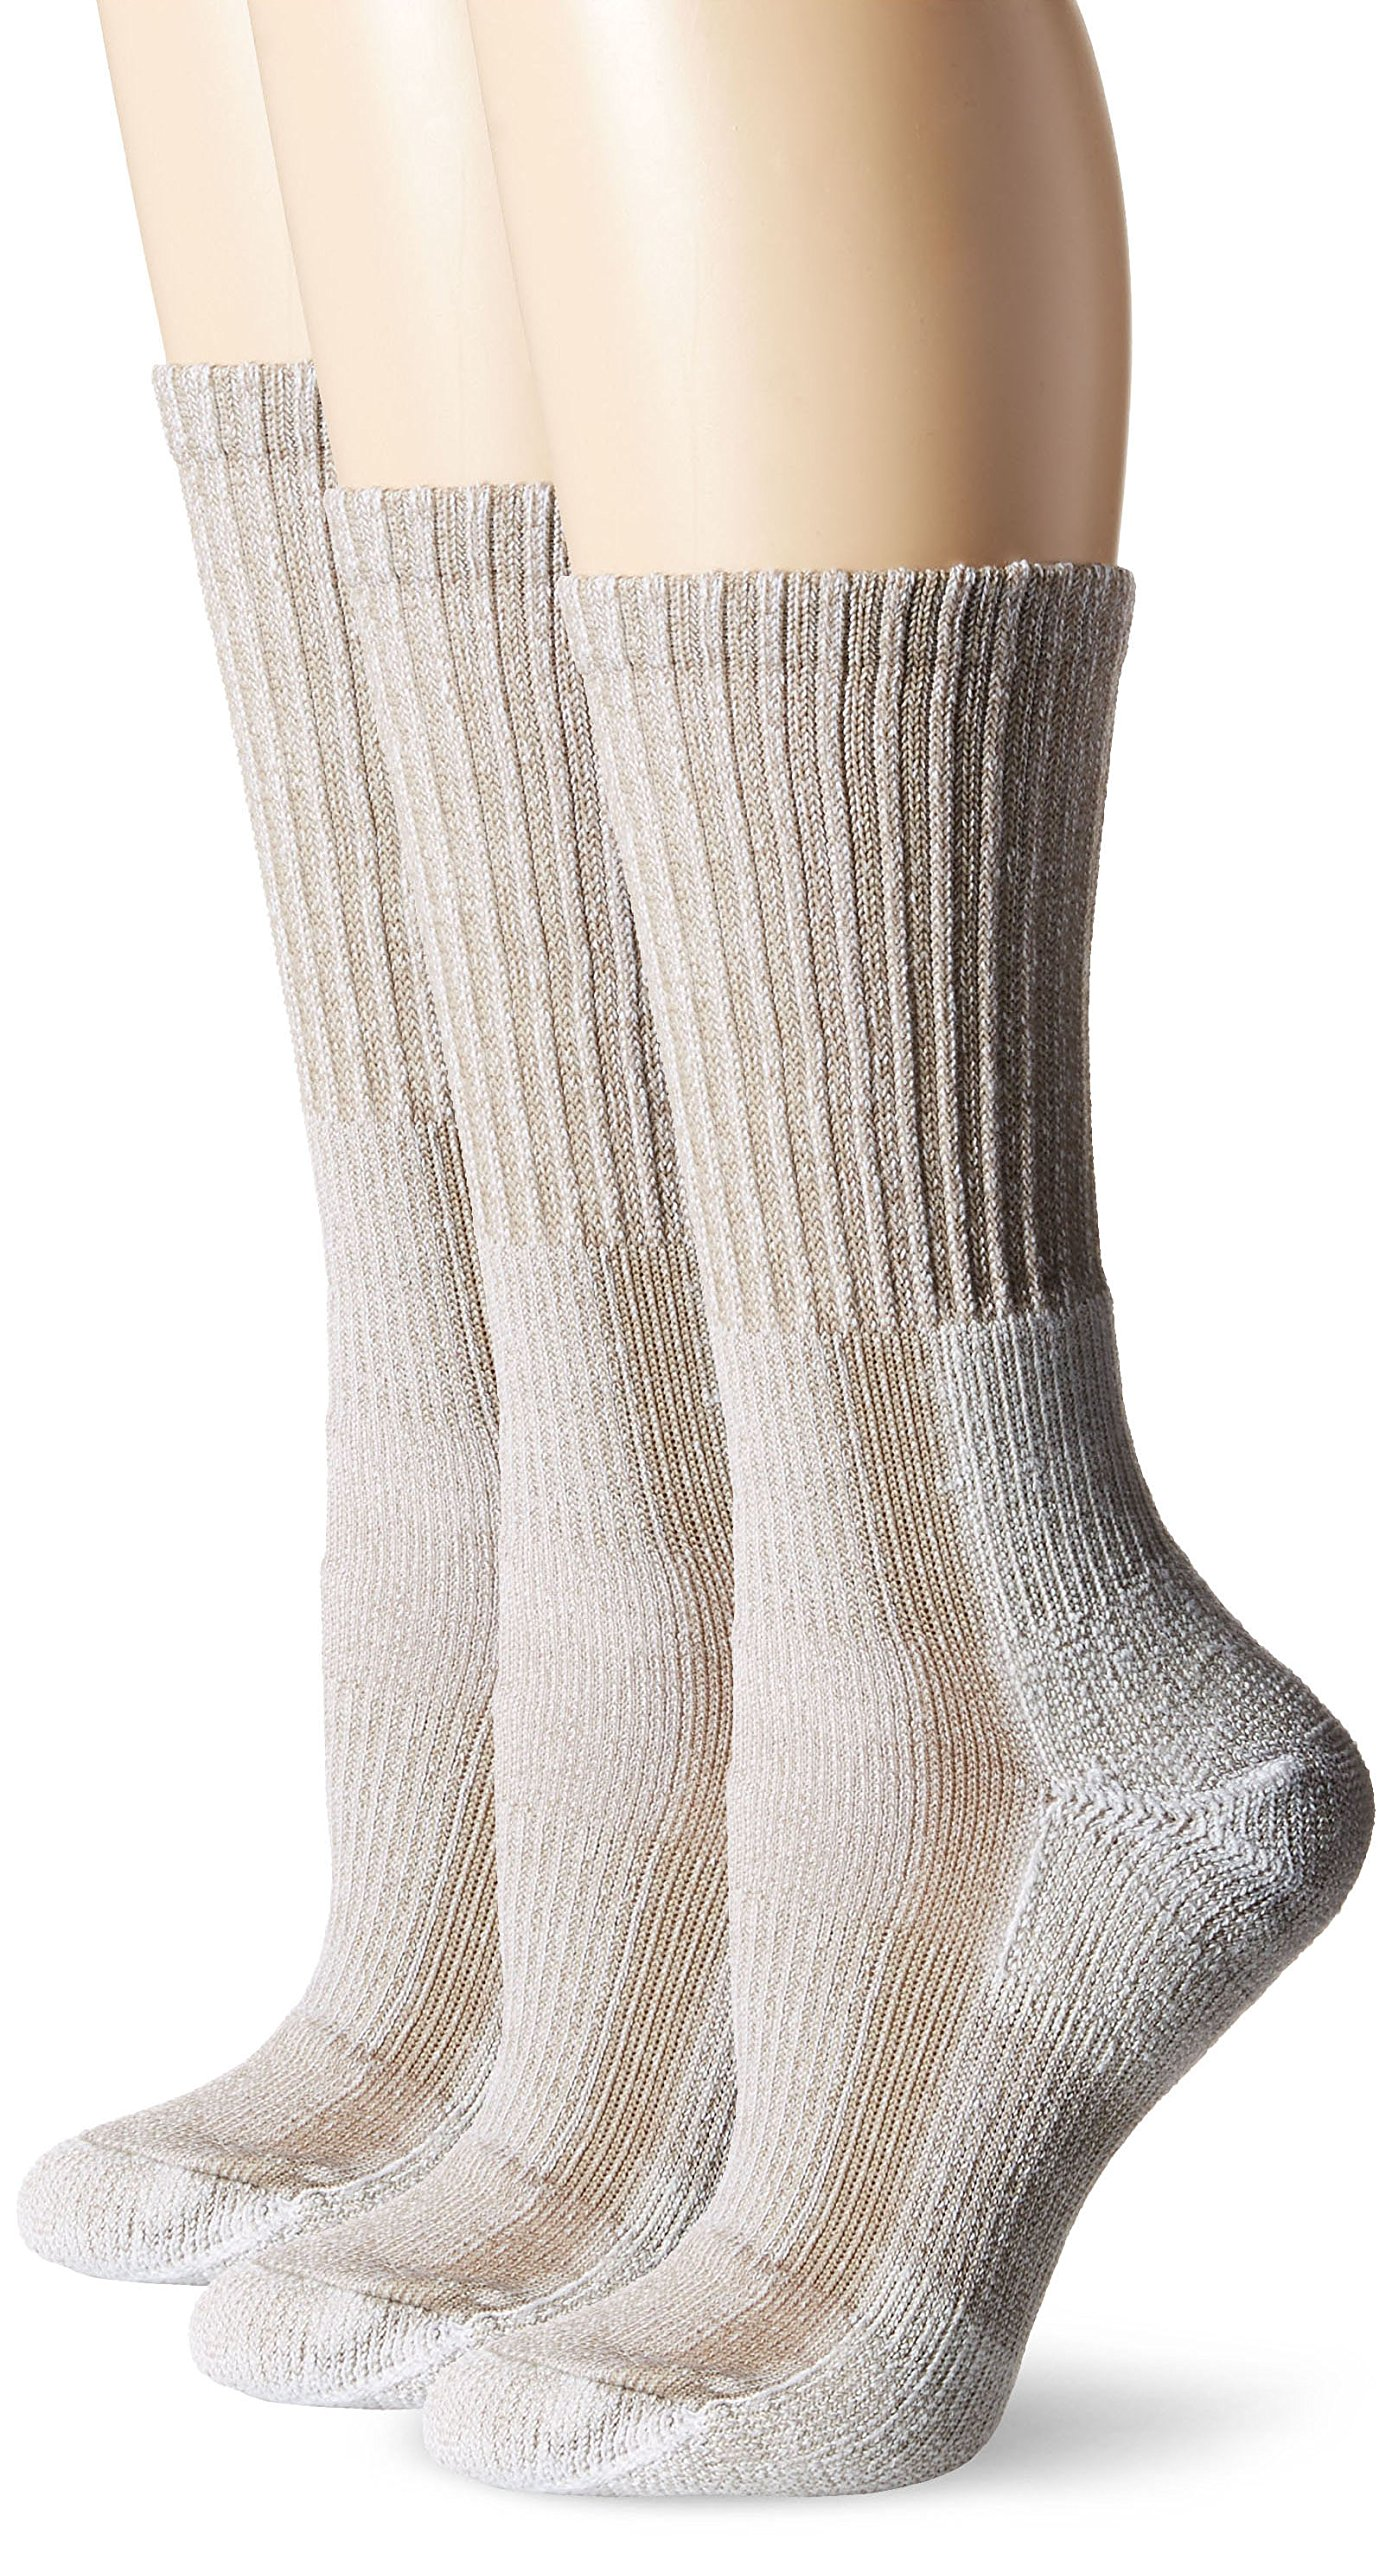 Thorlos Women's  LTHW Light Hiking Thick Padded Crew Sock, Tan (3 Pack), Large by thorlos